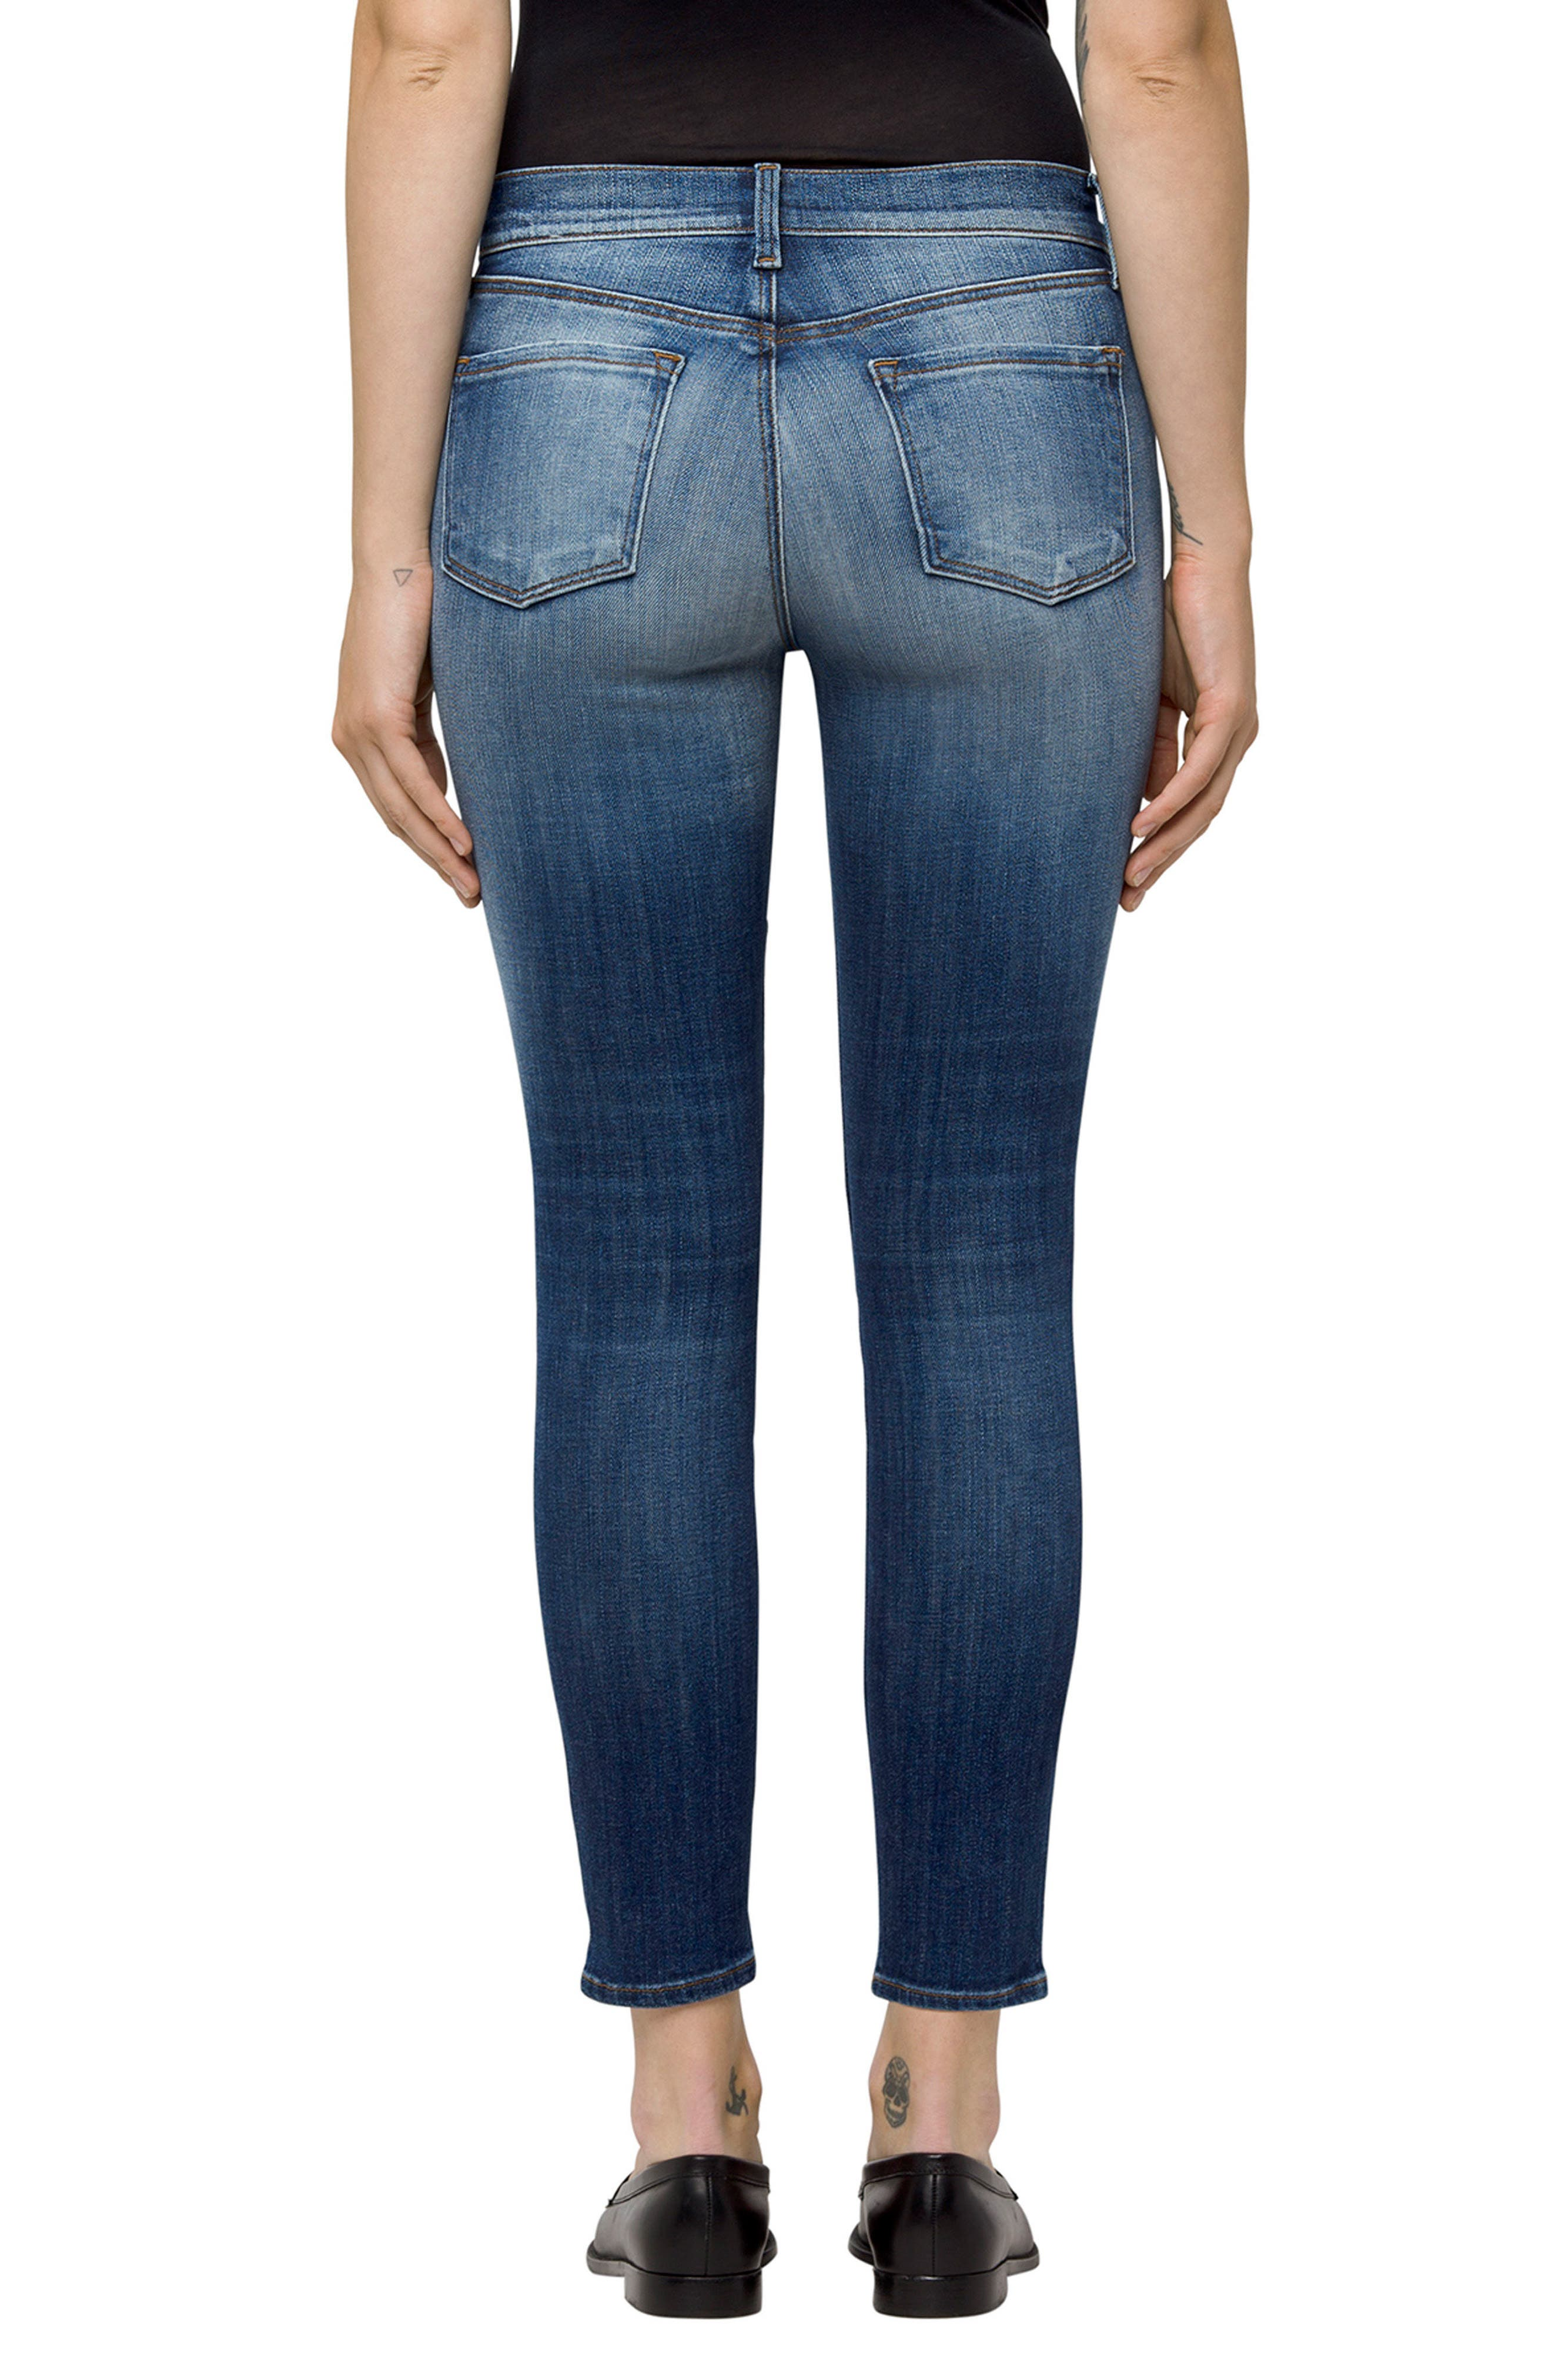 835 Crop Skinny Jeans,                             Alternate thumbnail 2, color,                             401